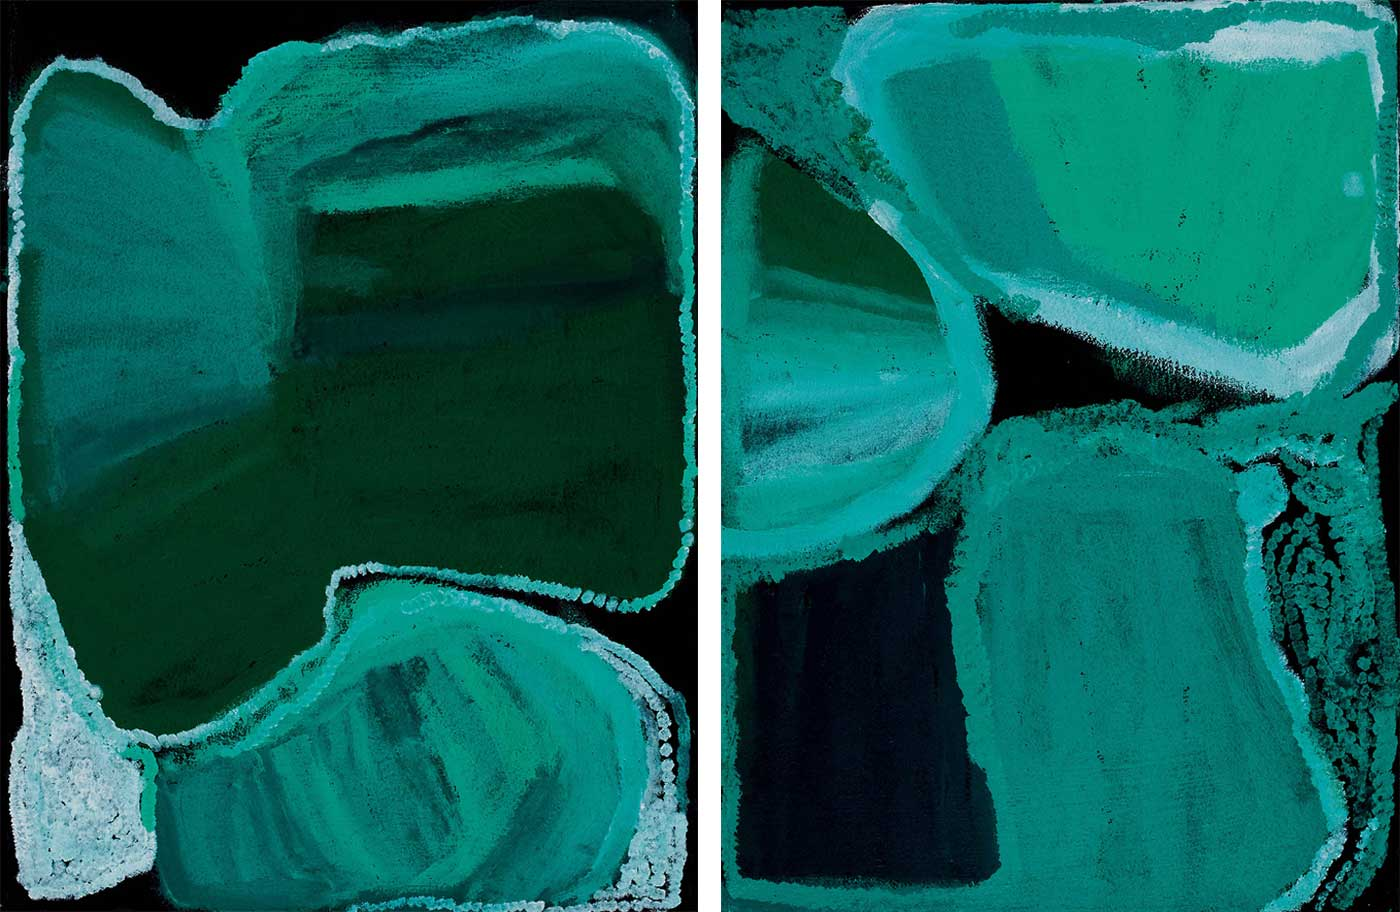 Kiriwirri, 2008, acrylic on linen painting - click to view larger image